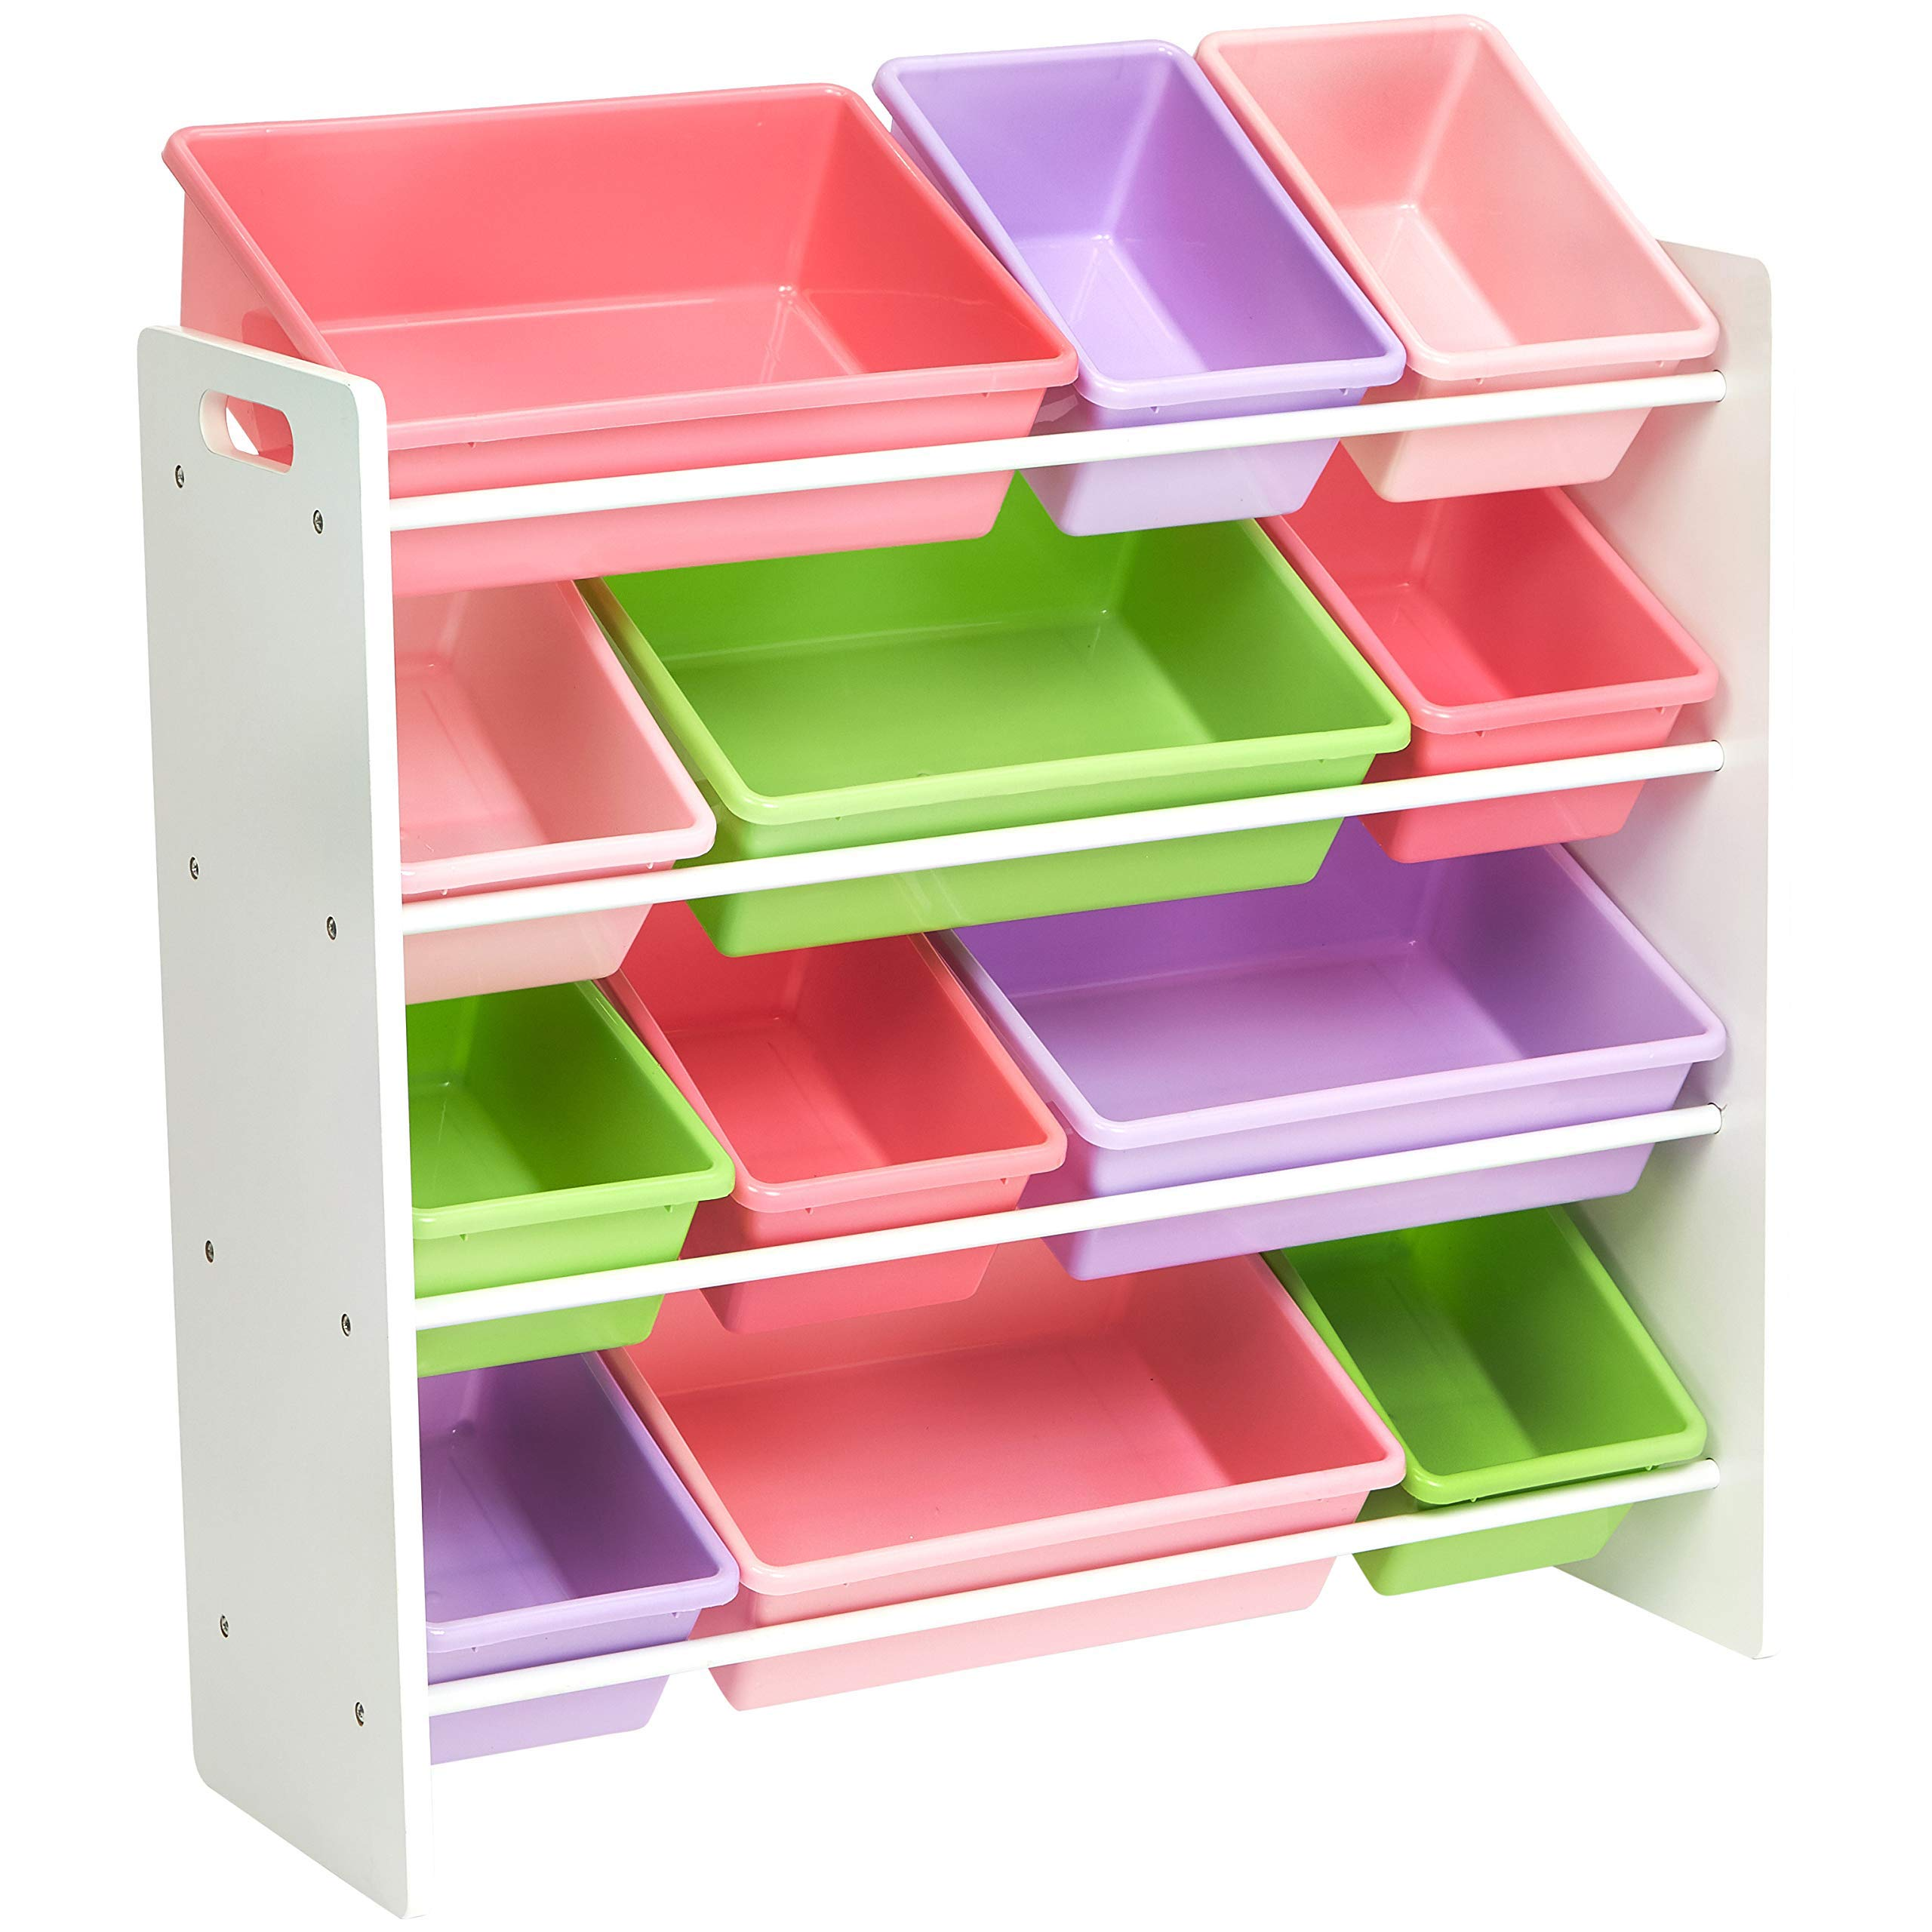 AmazonBasics Kids Toy Storage Organizer Bins - White/Pastel by AmazonBasics